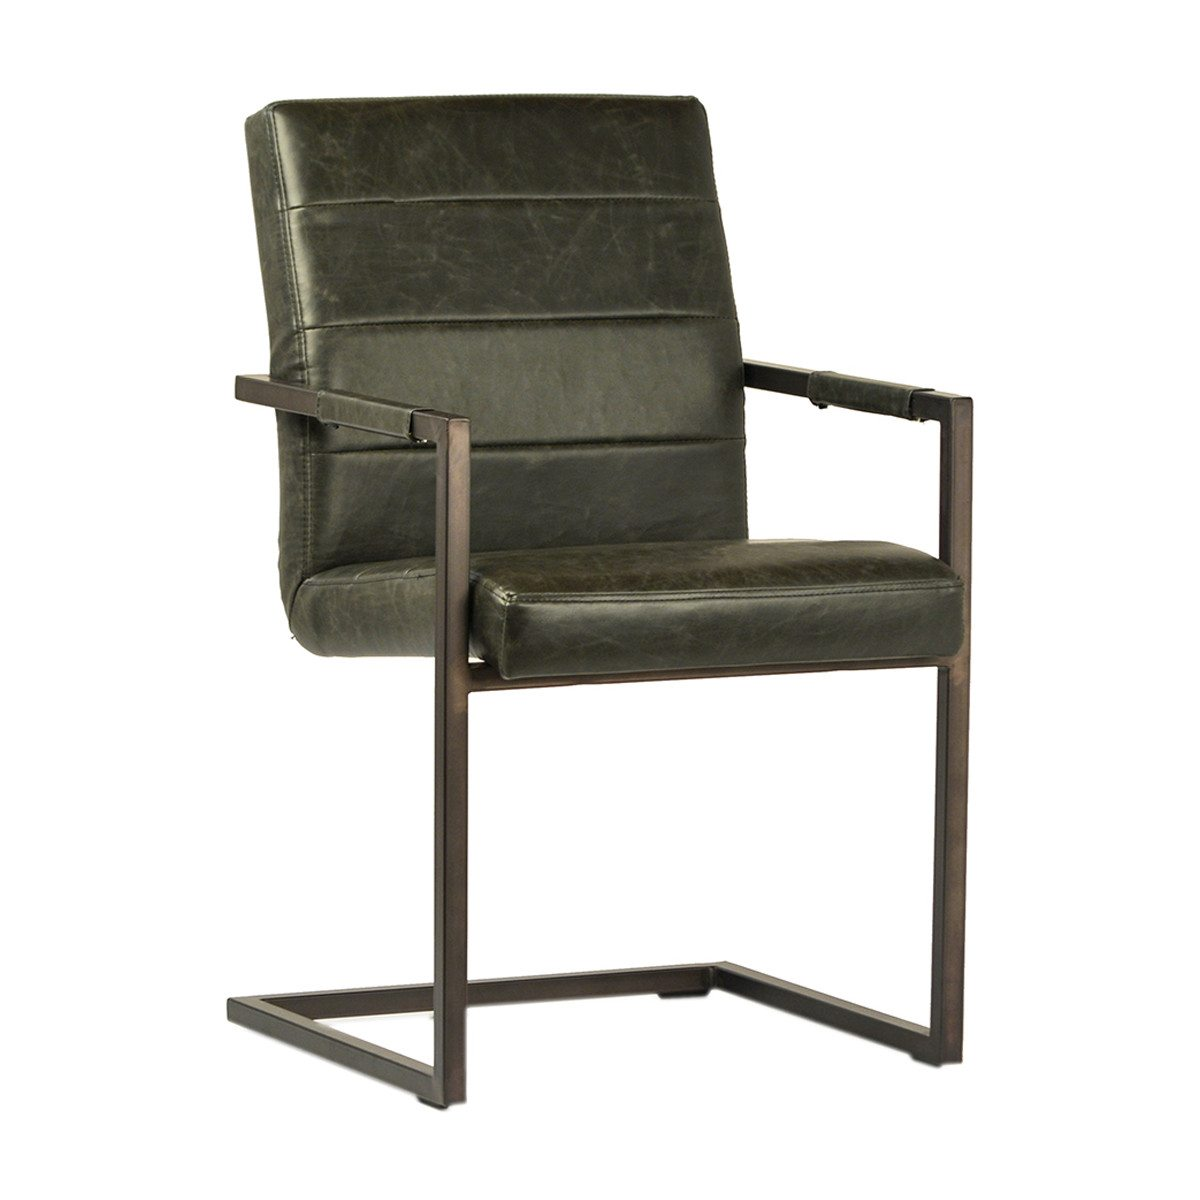 falcon-chair-shopceladon